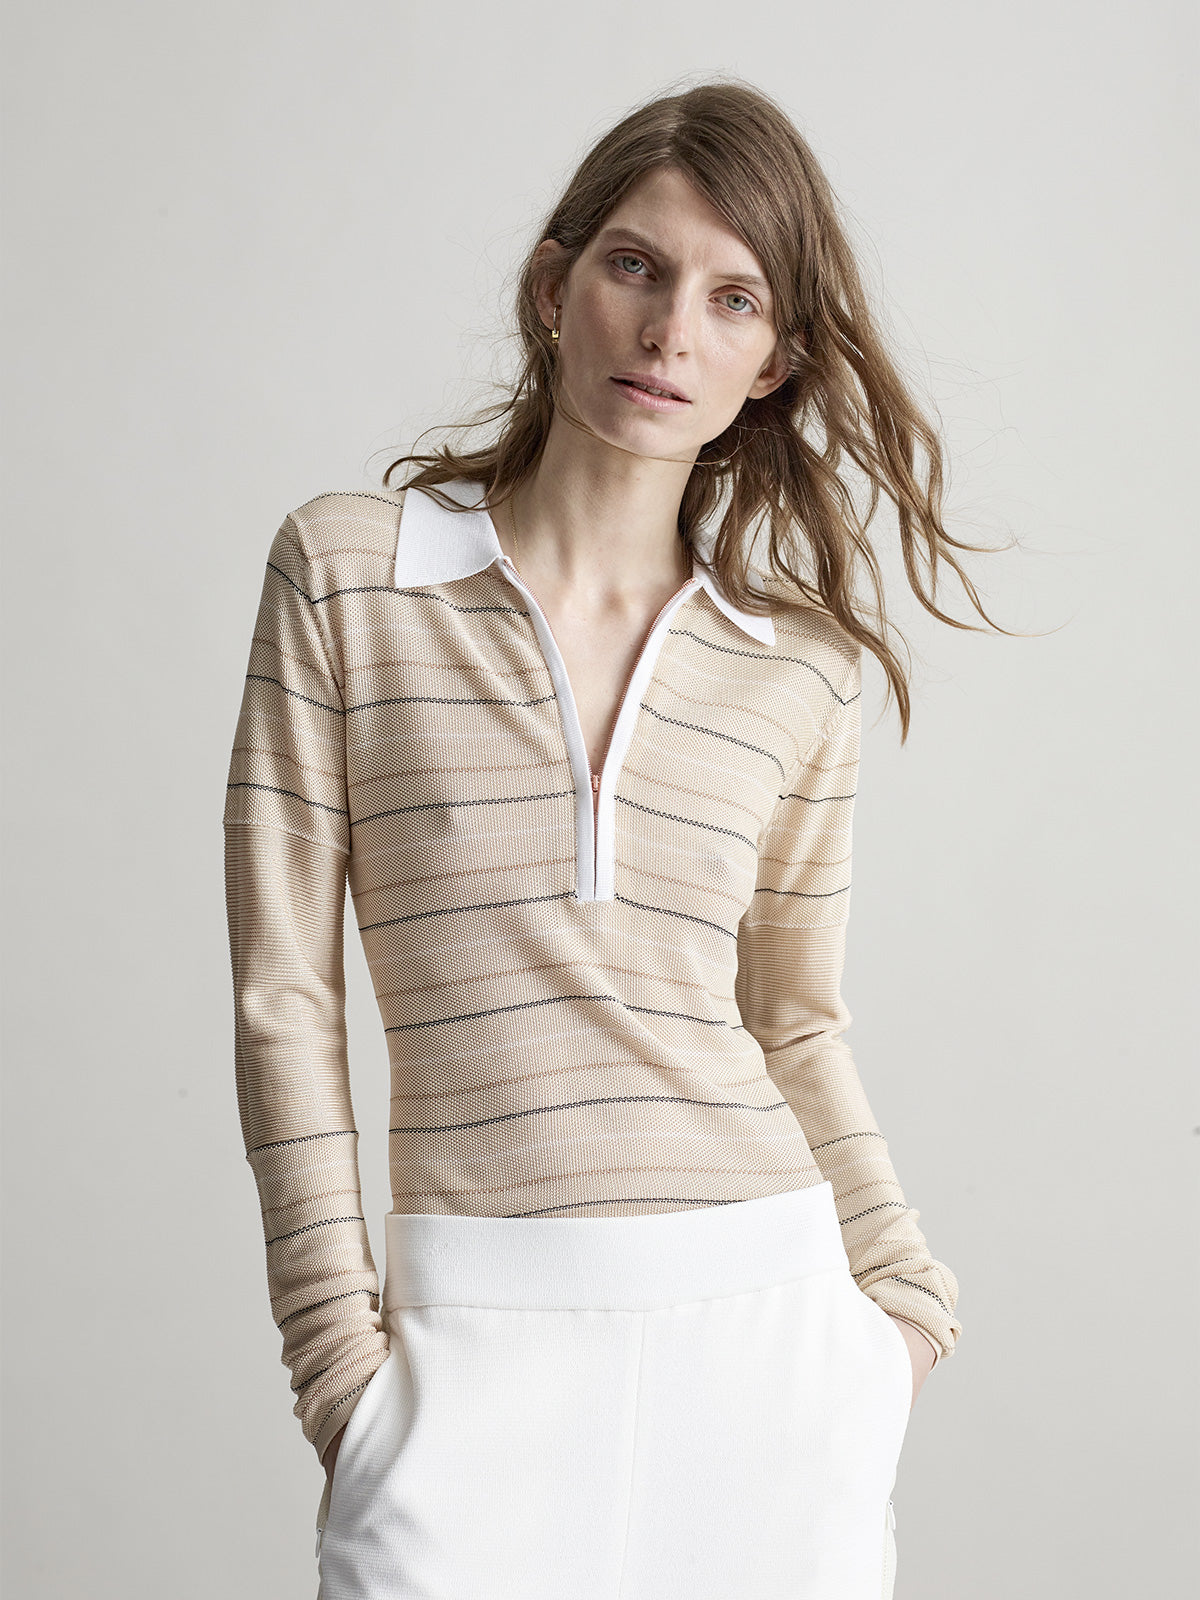 Emerson Polo Top, Cream - Sykes London